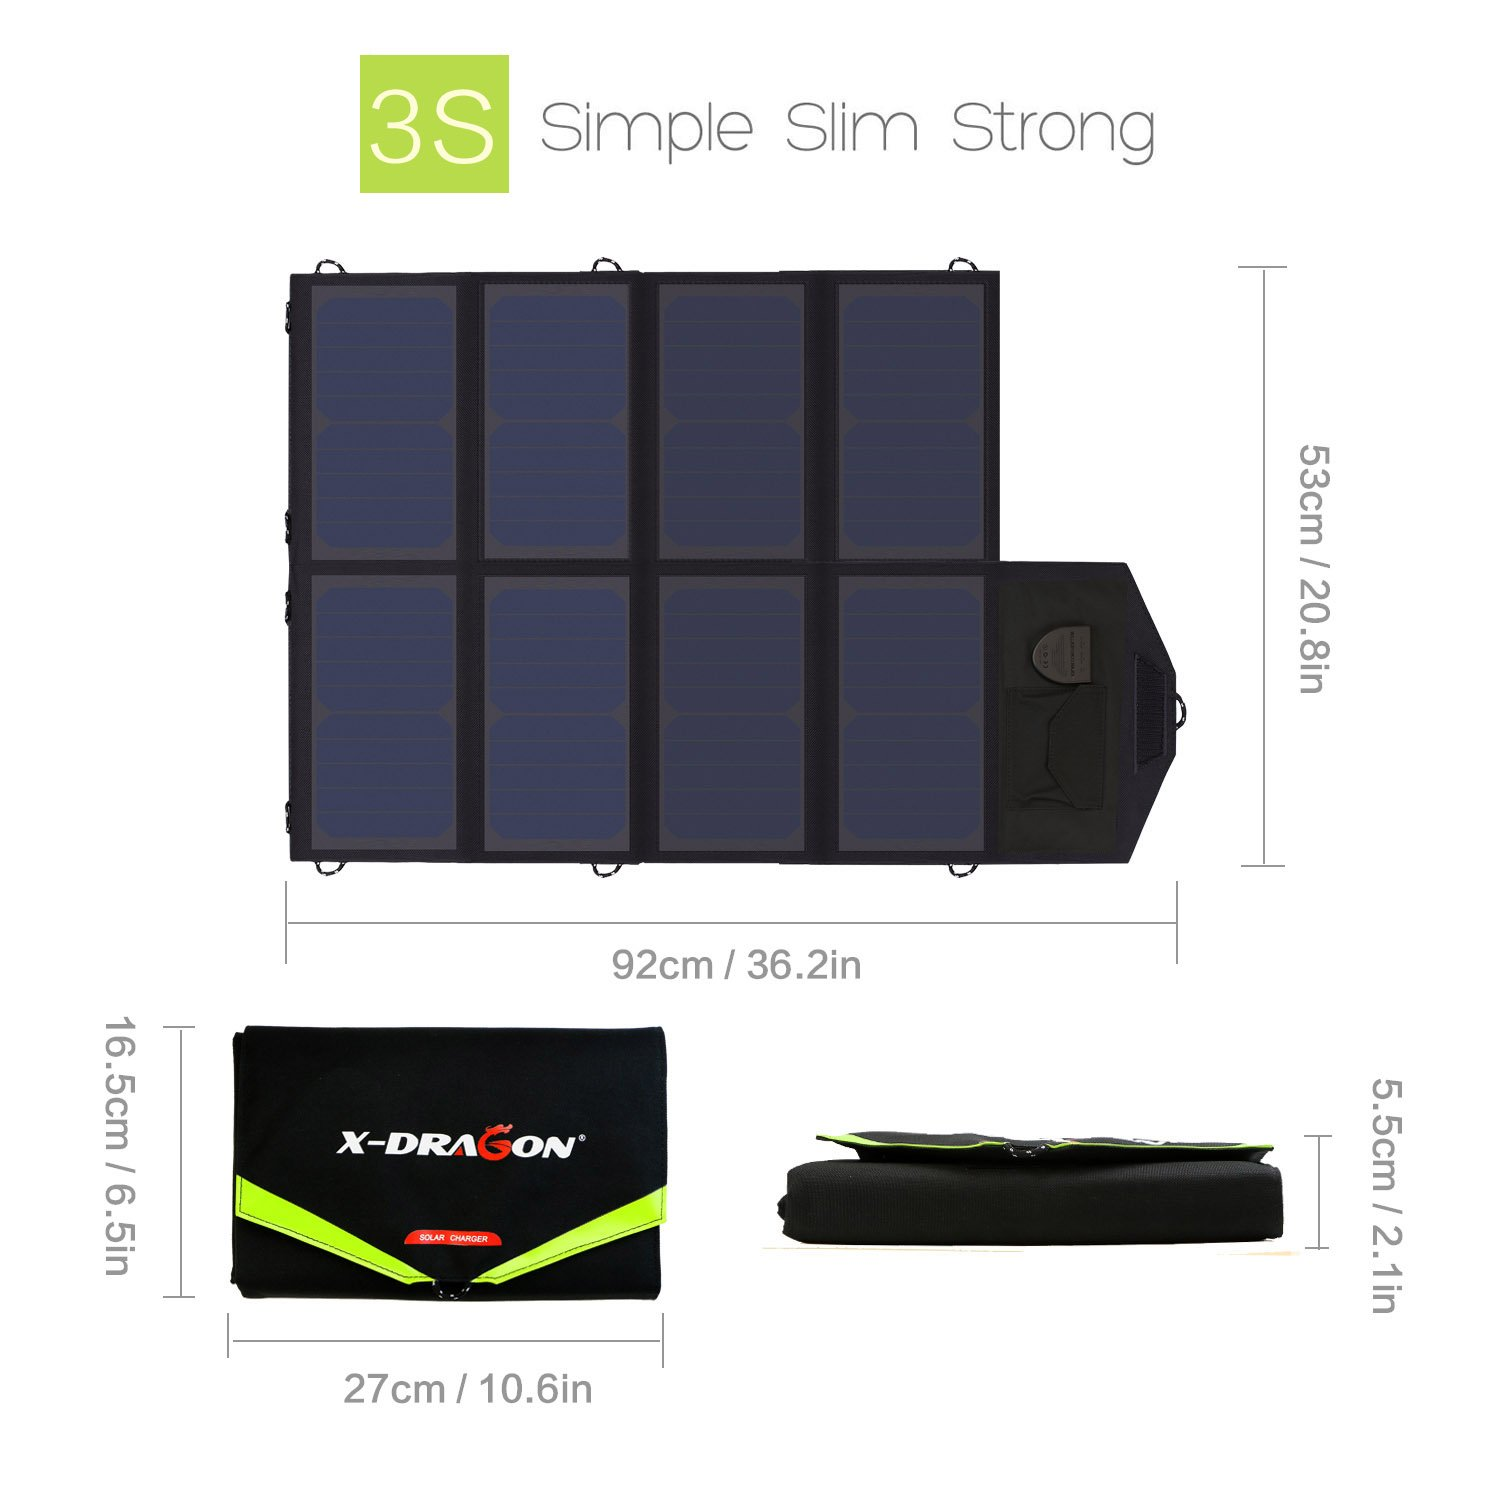 Solar Charger, X-DRAGON 40W SunPower Solar Panel Charger (5V USB with SolarIQ + 18V DC) Water Resistant Laptop Charger for Phone, NoteBook, Tablet, Apple, iPhone, iPod, Samsung, Android Smartphones by X-DRAGON (Image #2)